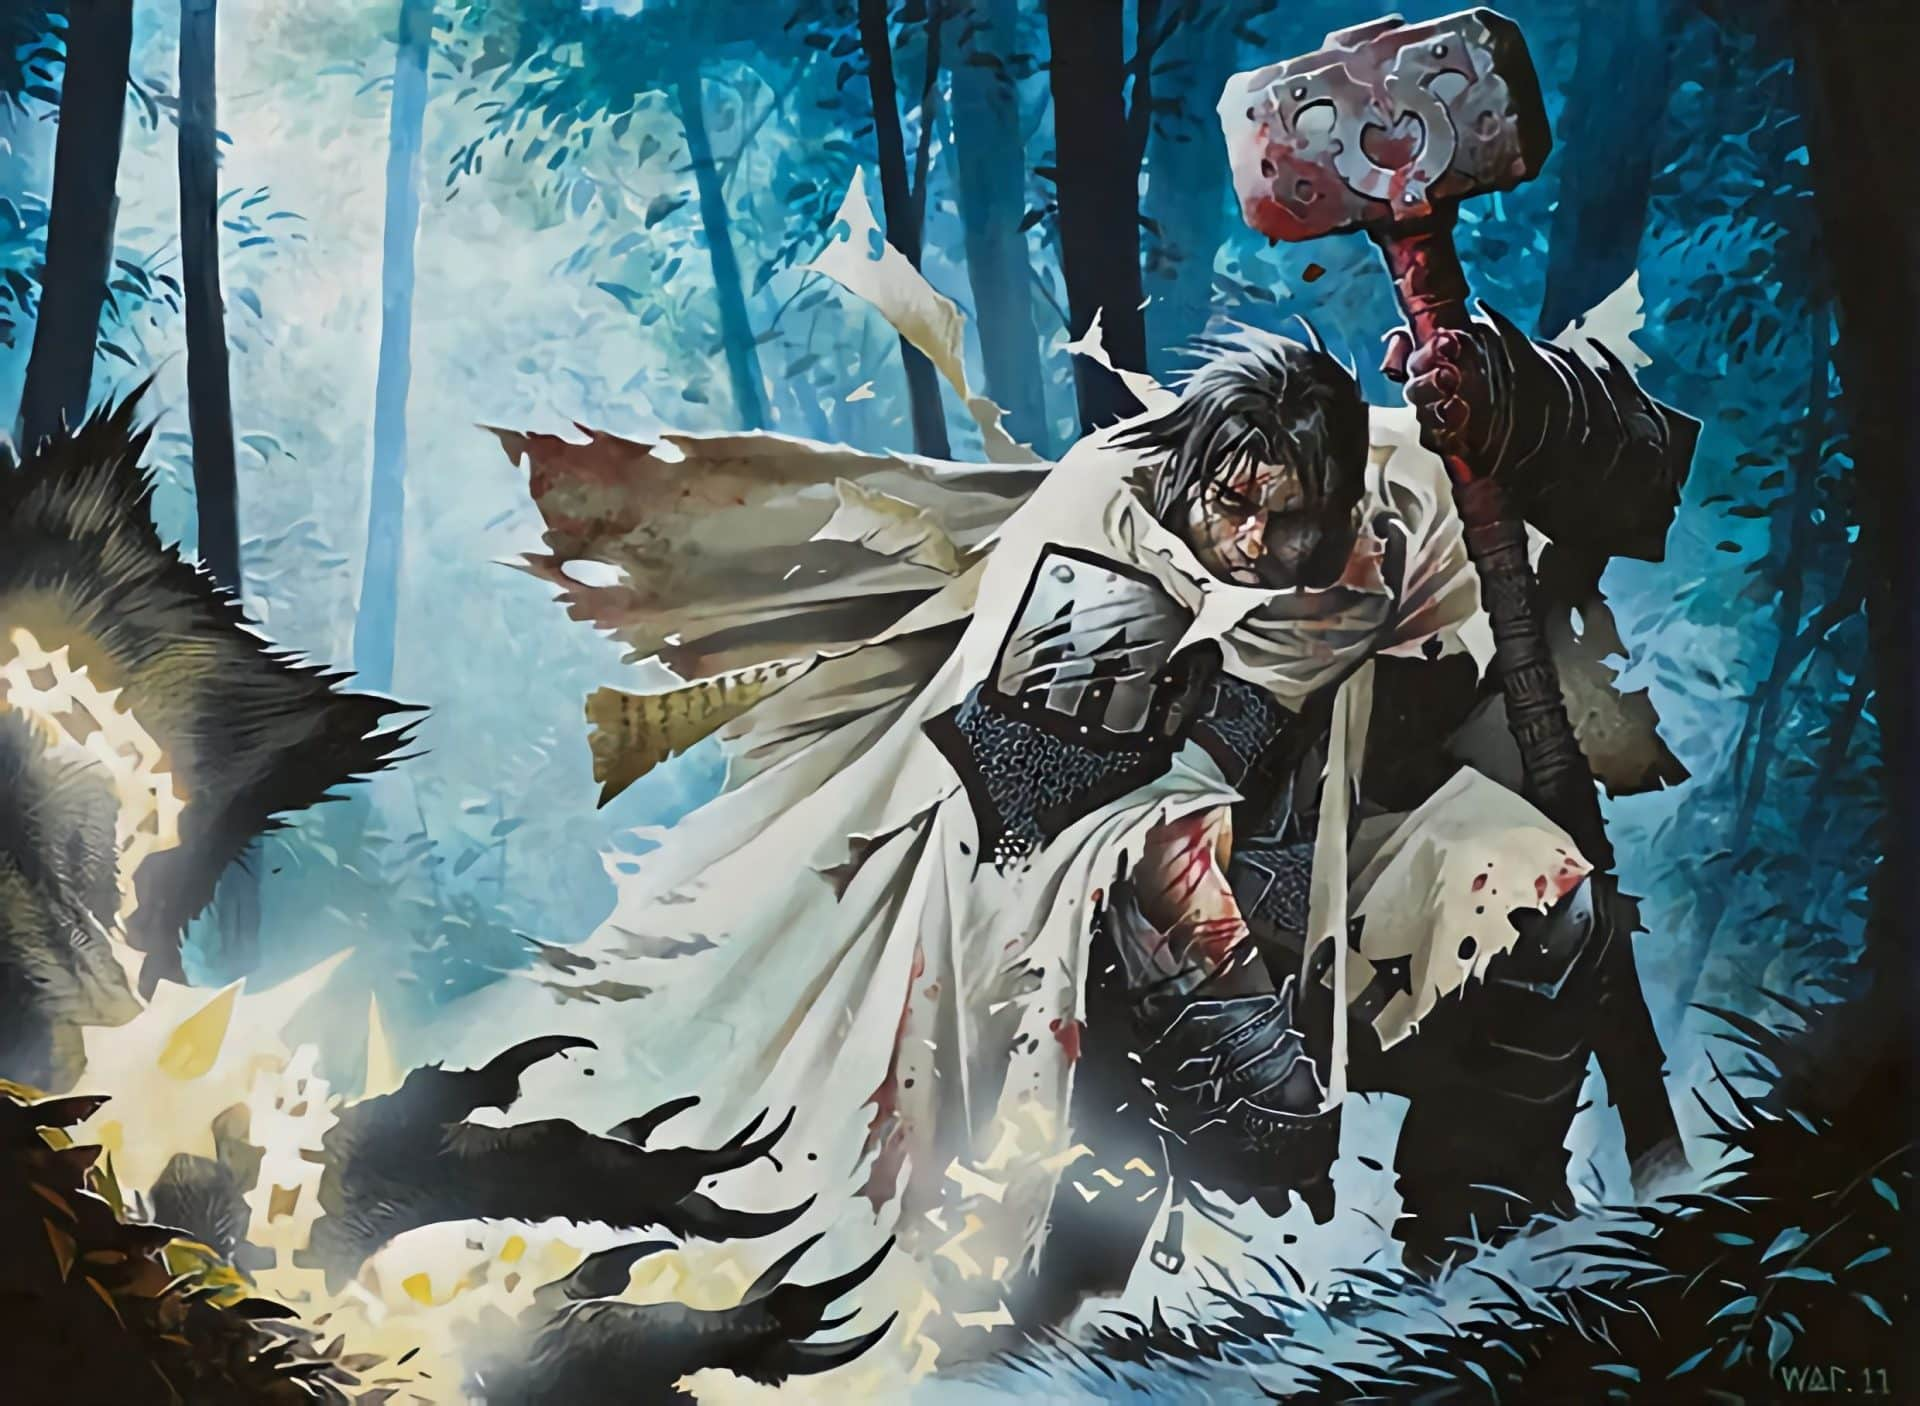 5e Cleric turning undead with holy energy